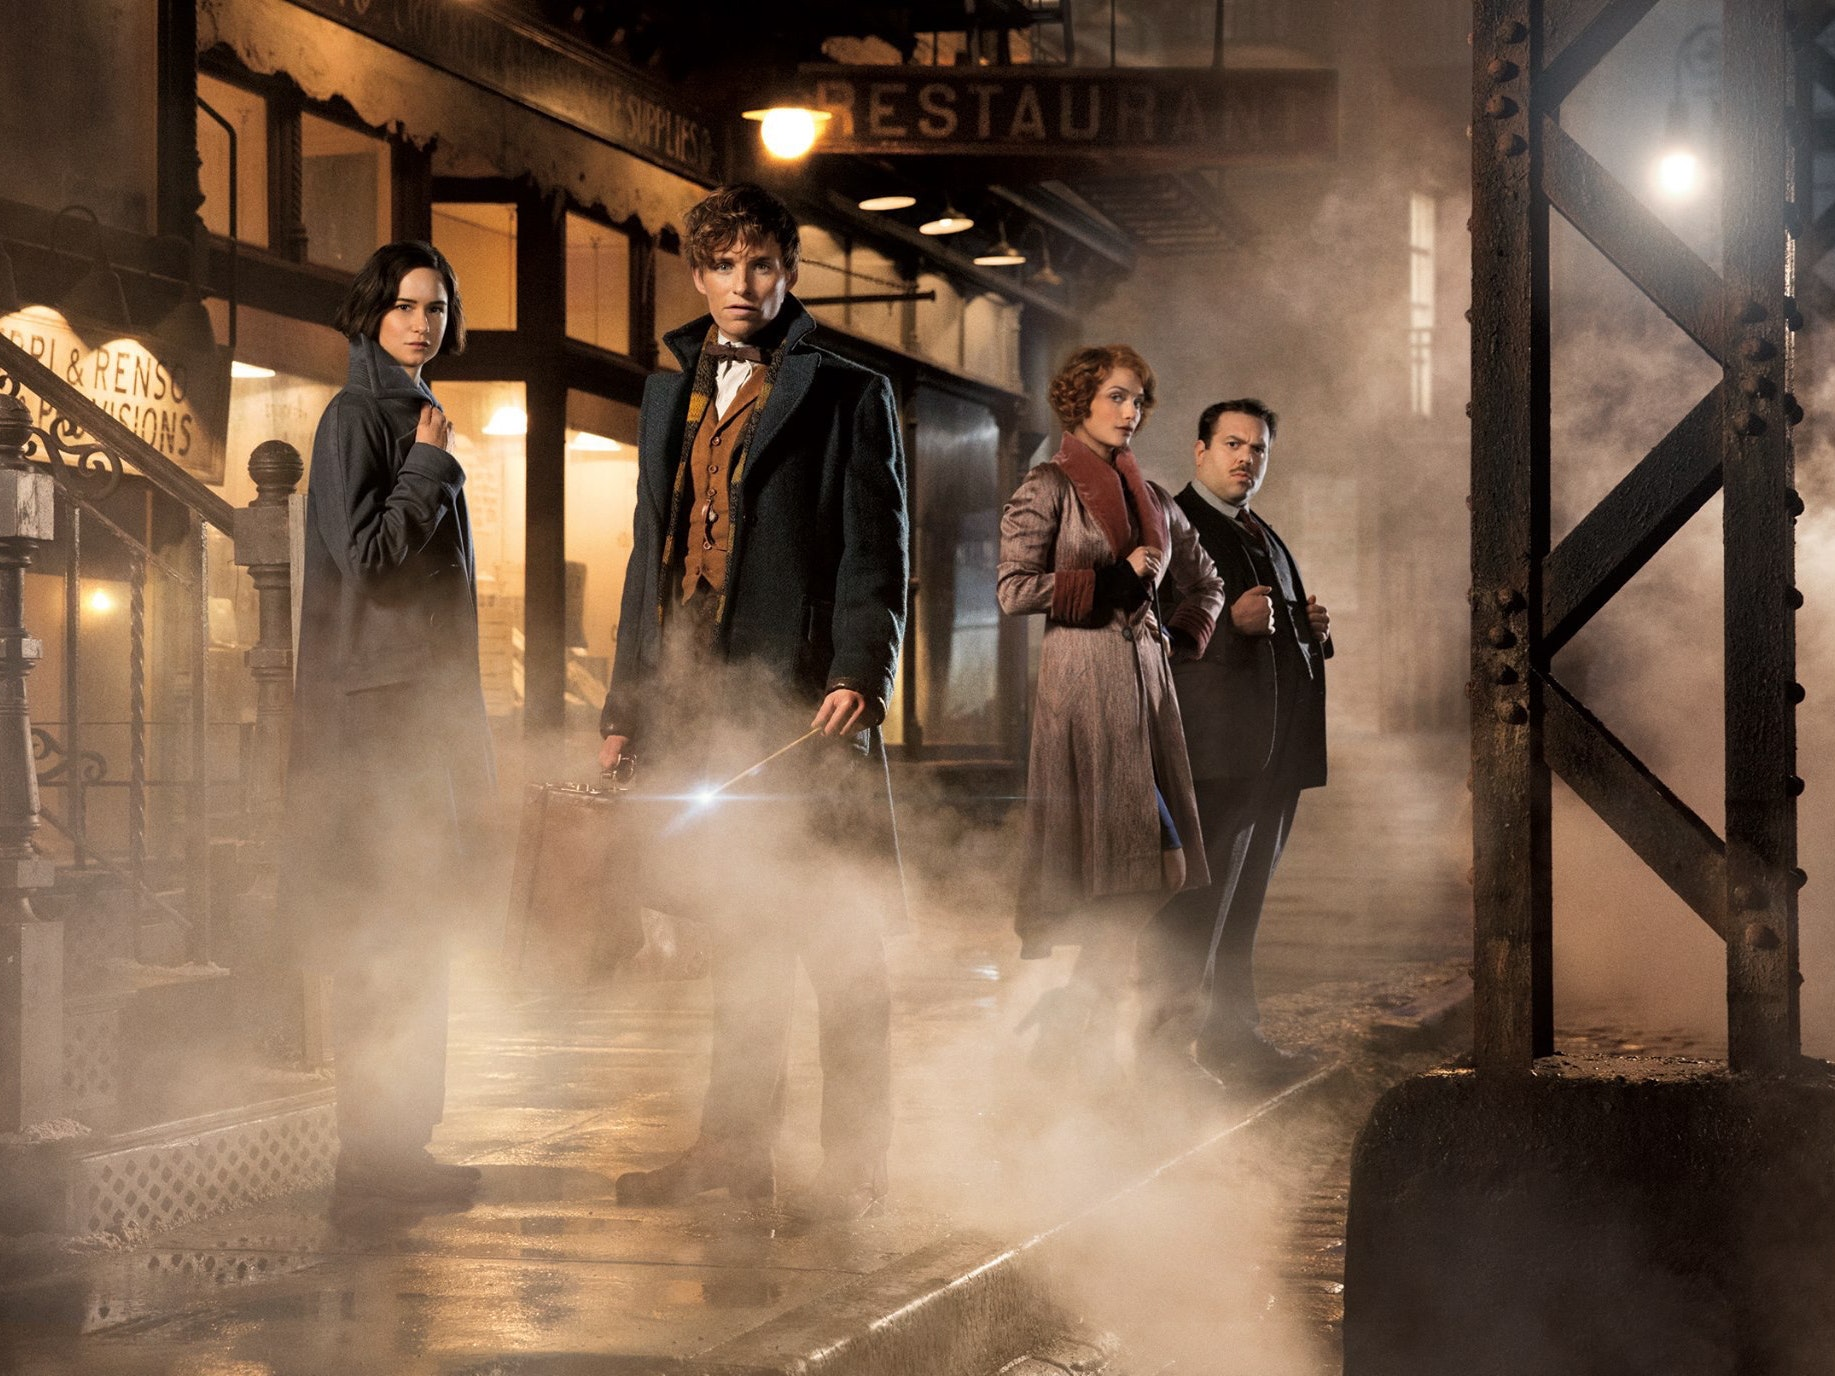 Here's What's in the First 10 Minutes of 'Fantastic Beasts'